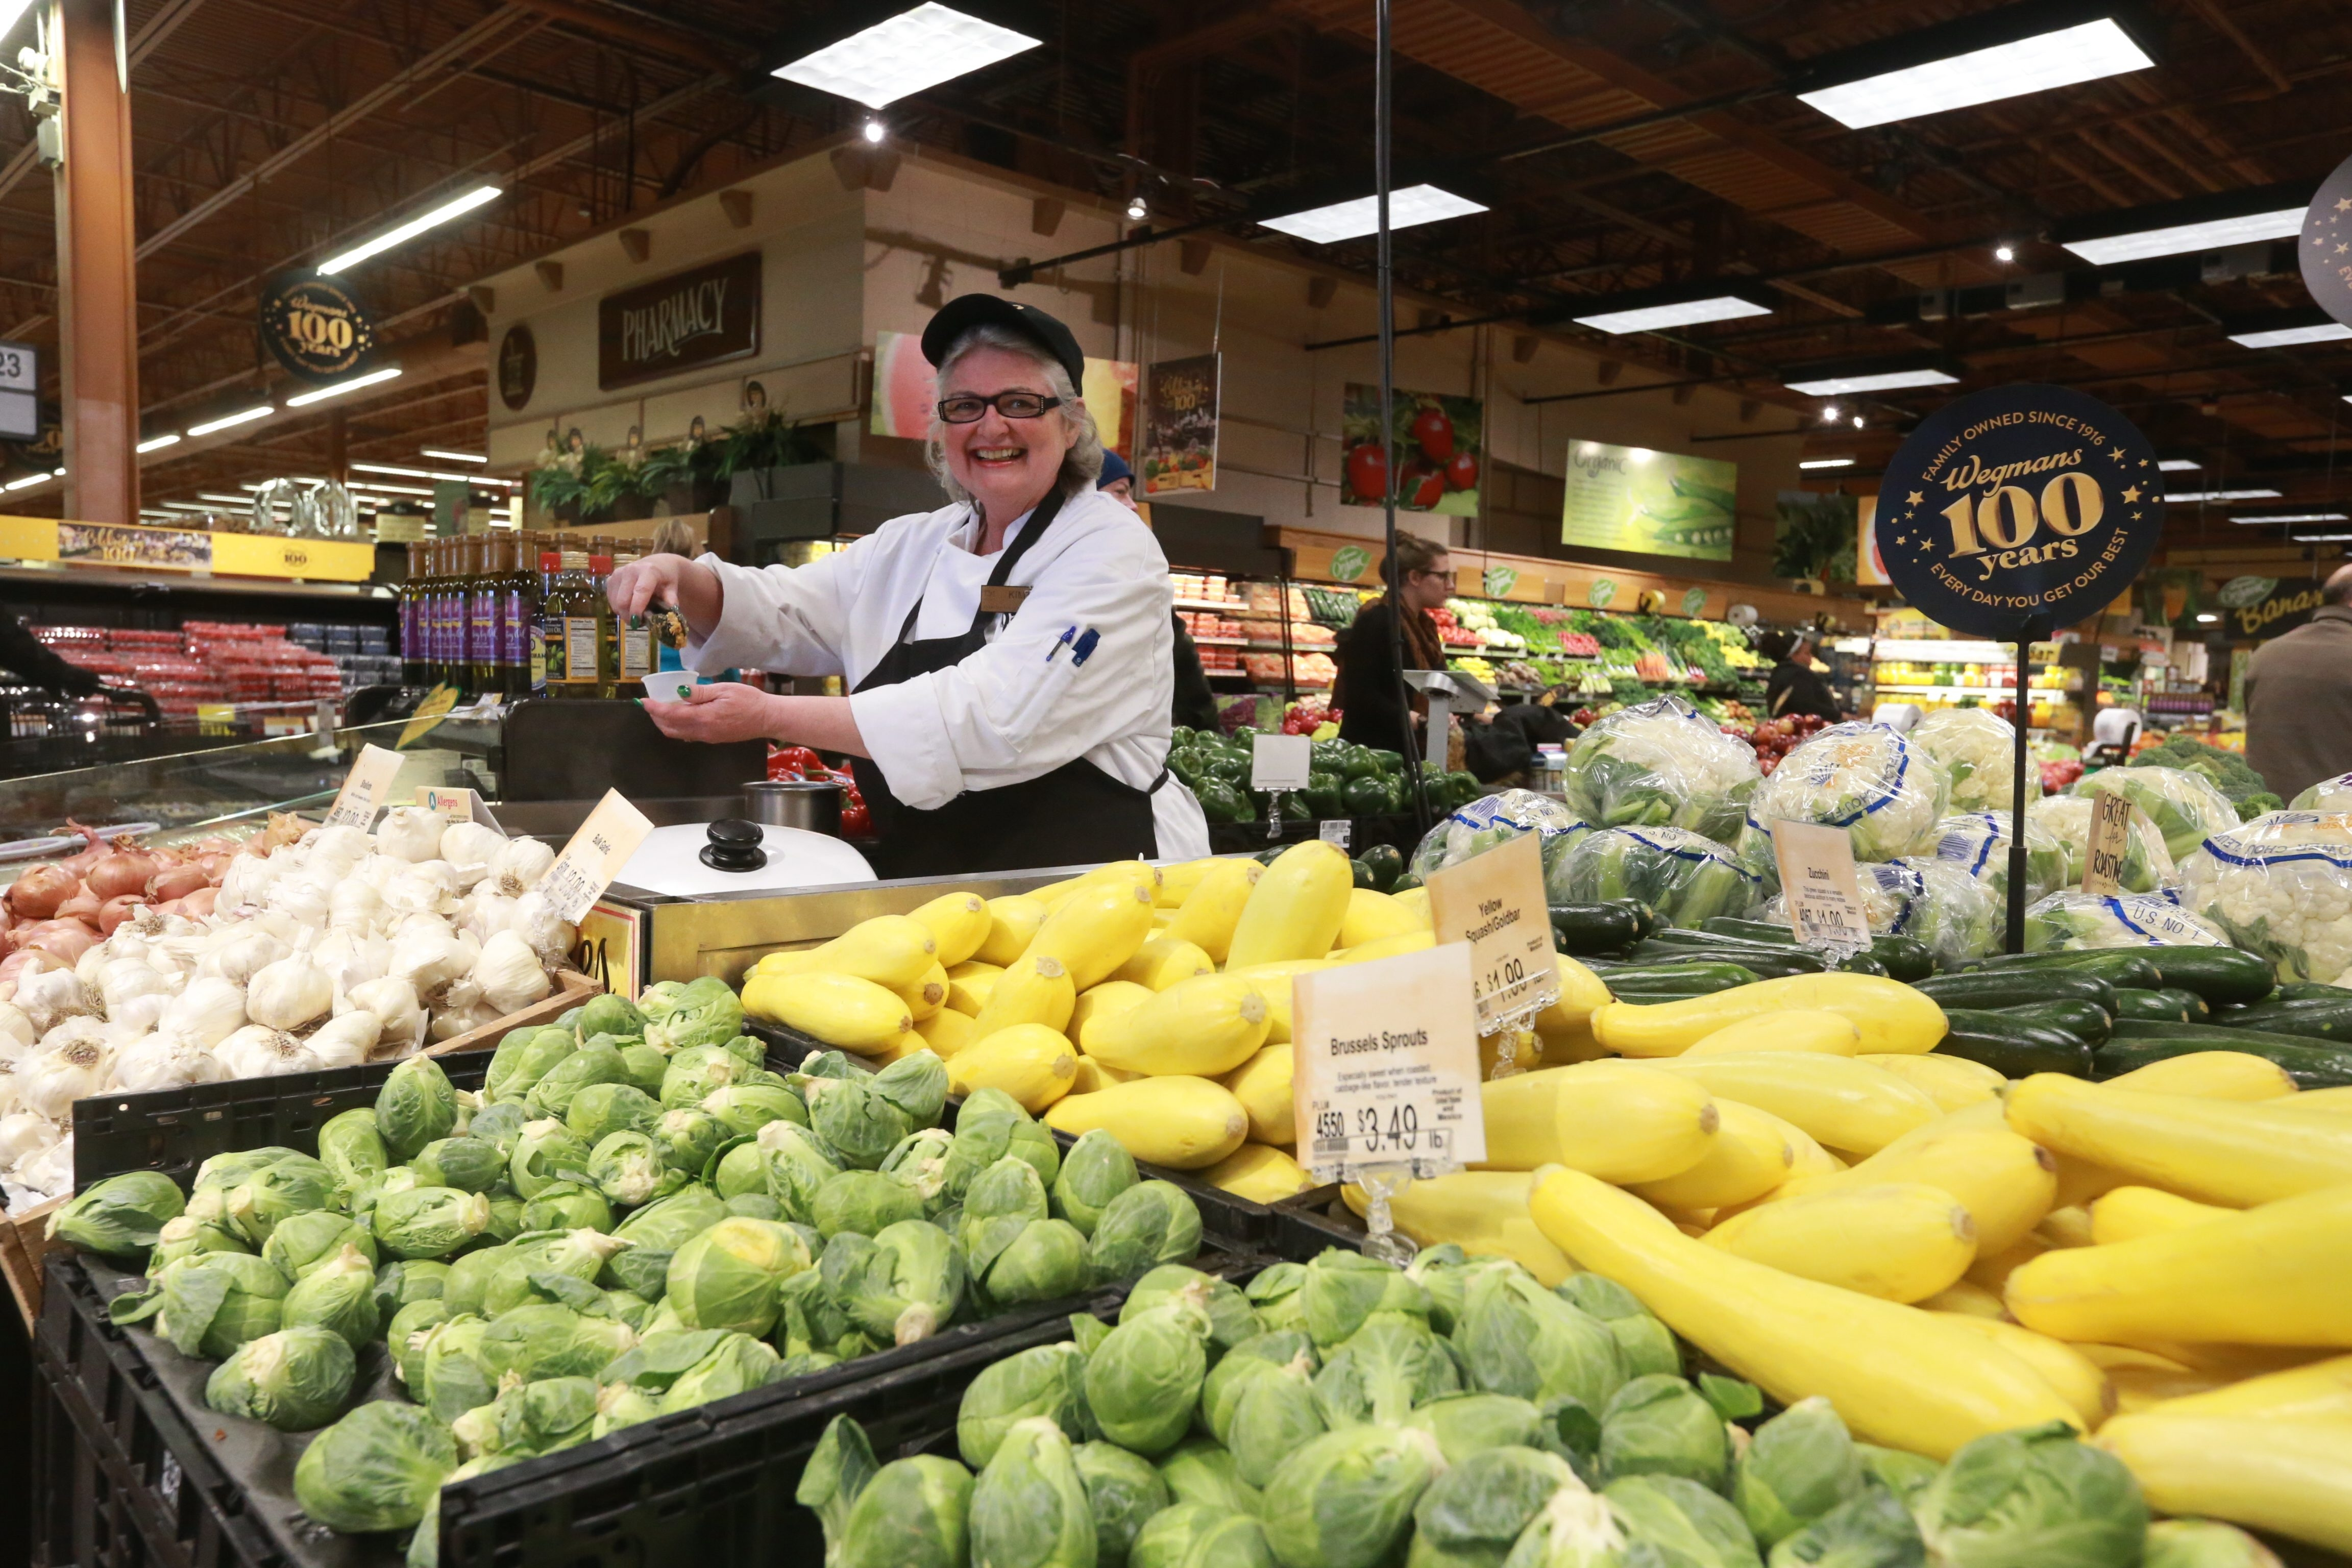 Kim Durak, a Wegmans produce worker at Amherst Street store, reflects pride in chain's No. 4 rating on national list.